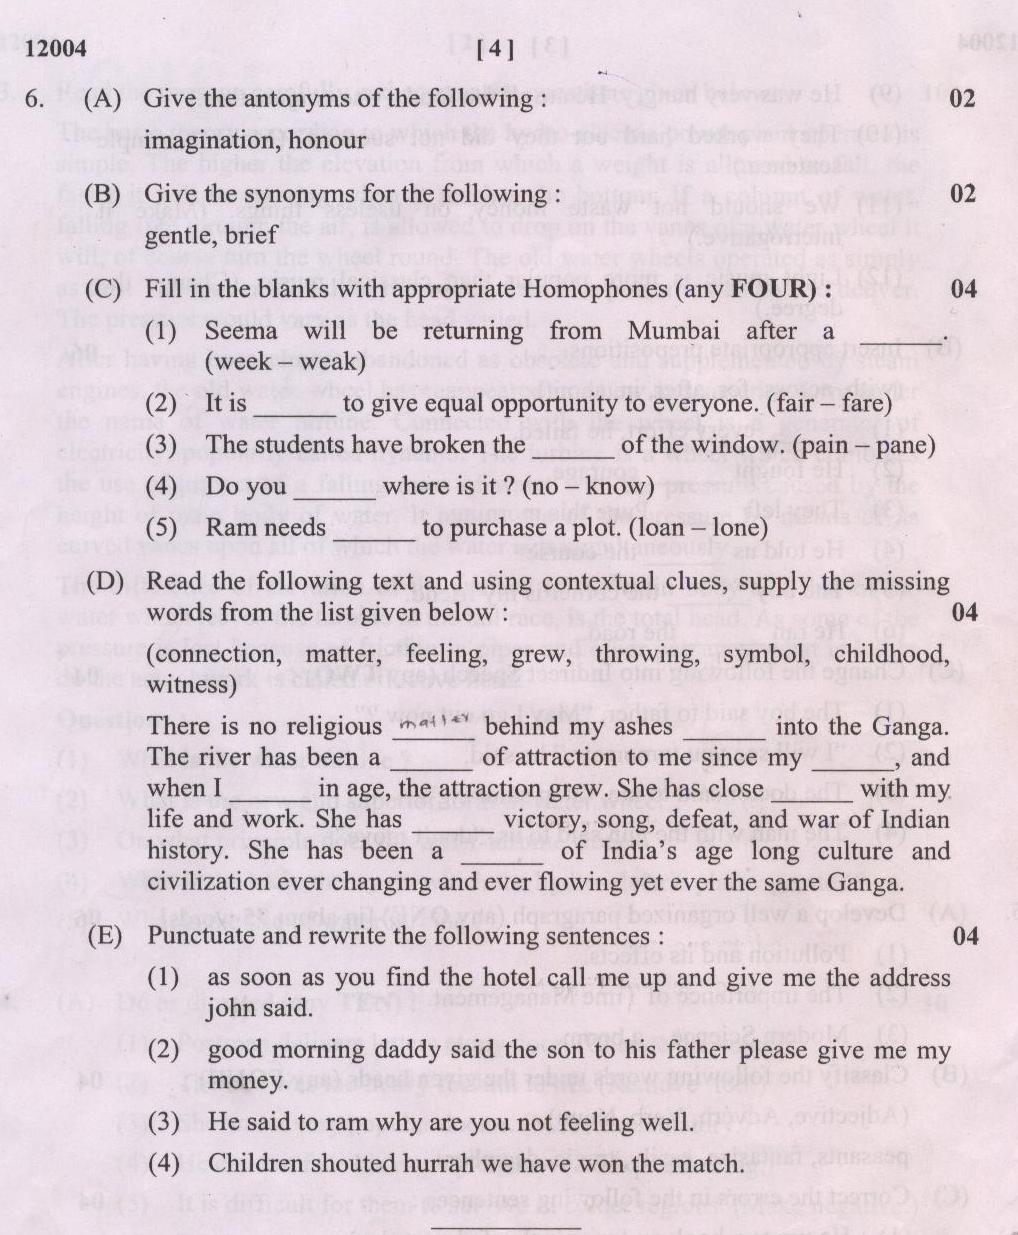 maharashtra state board  technical education msbte question paper  diploma  computer